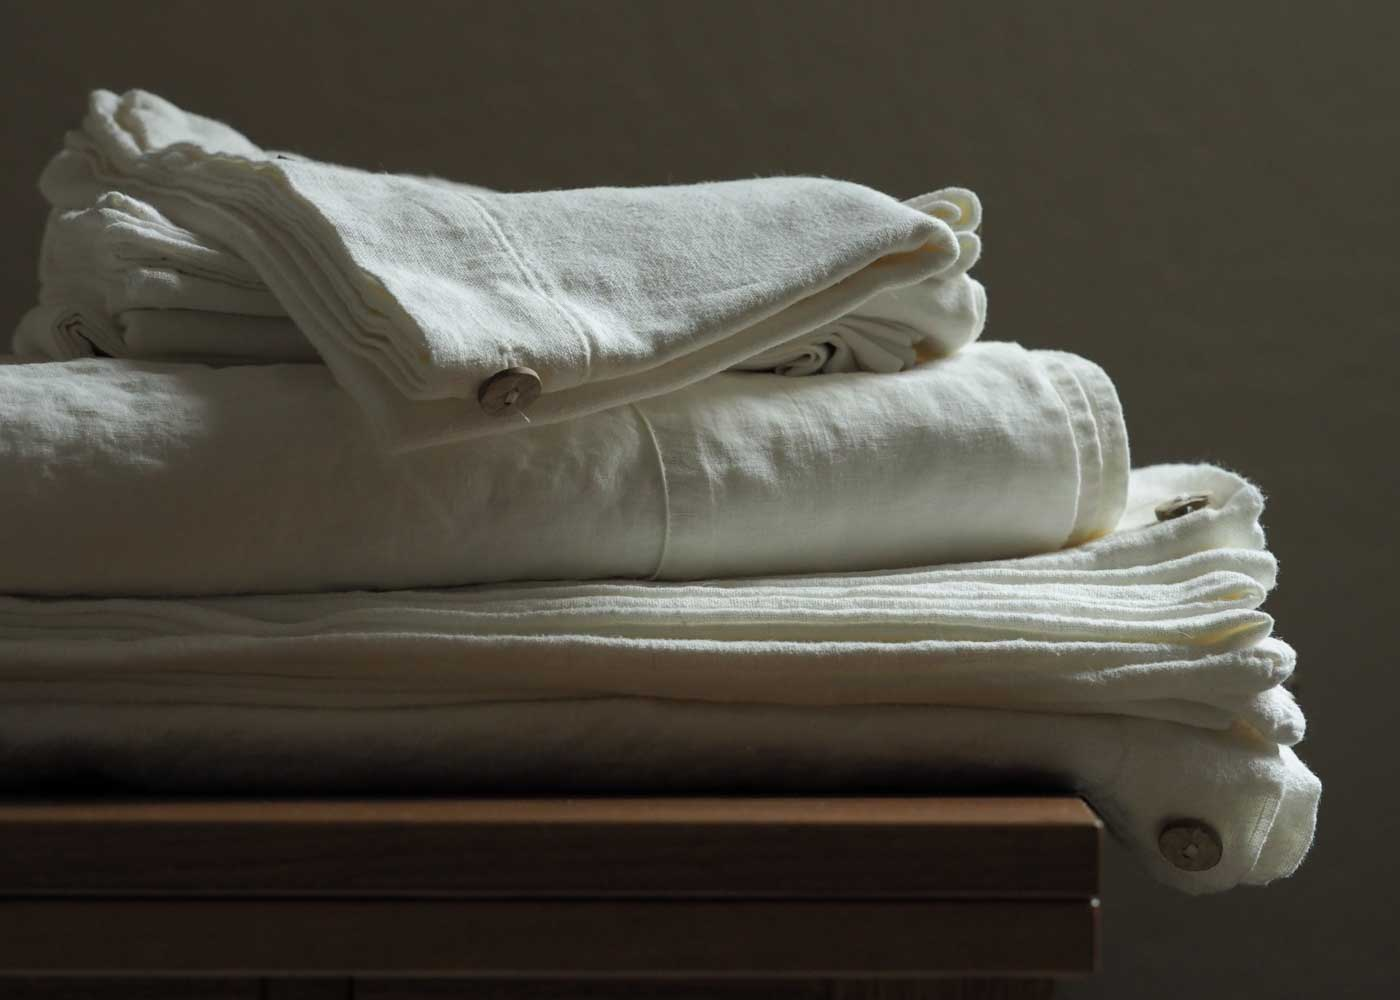 Linen sheets, like these from Rough Linen, are lovely for sleeping, especially in the summertime.